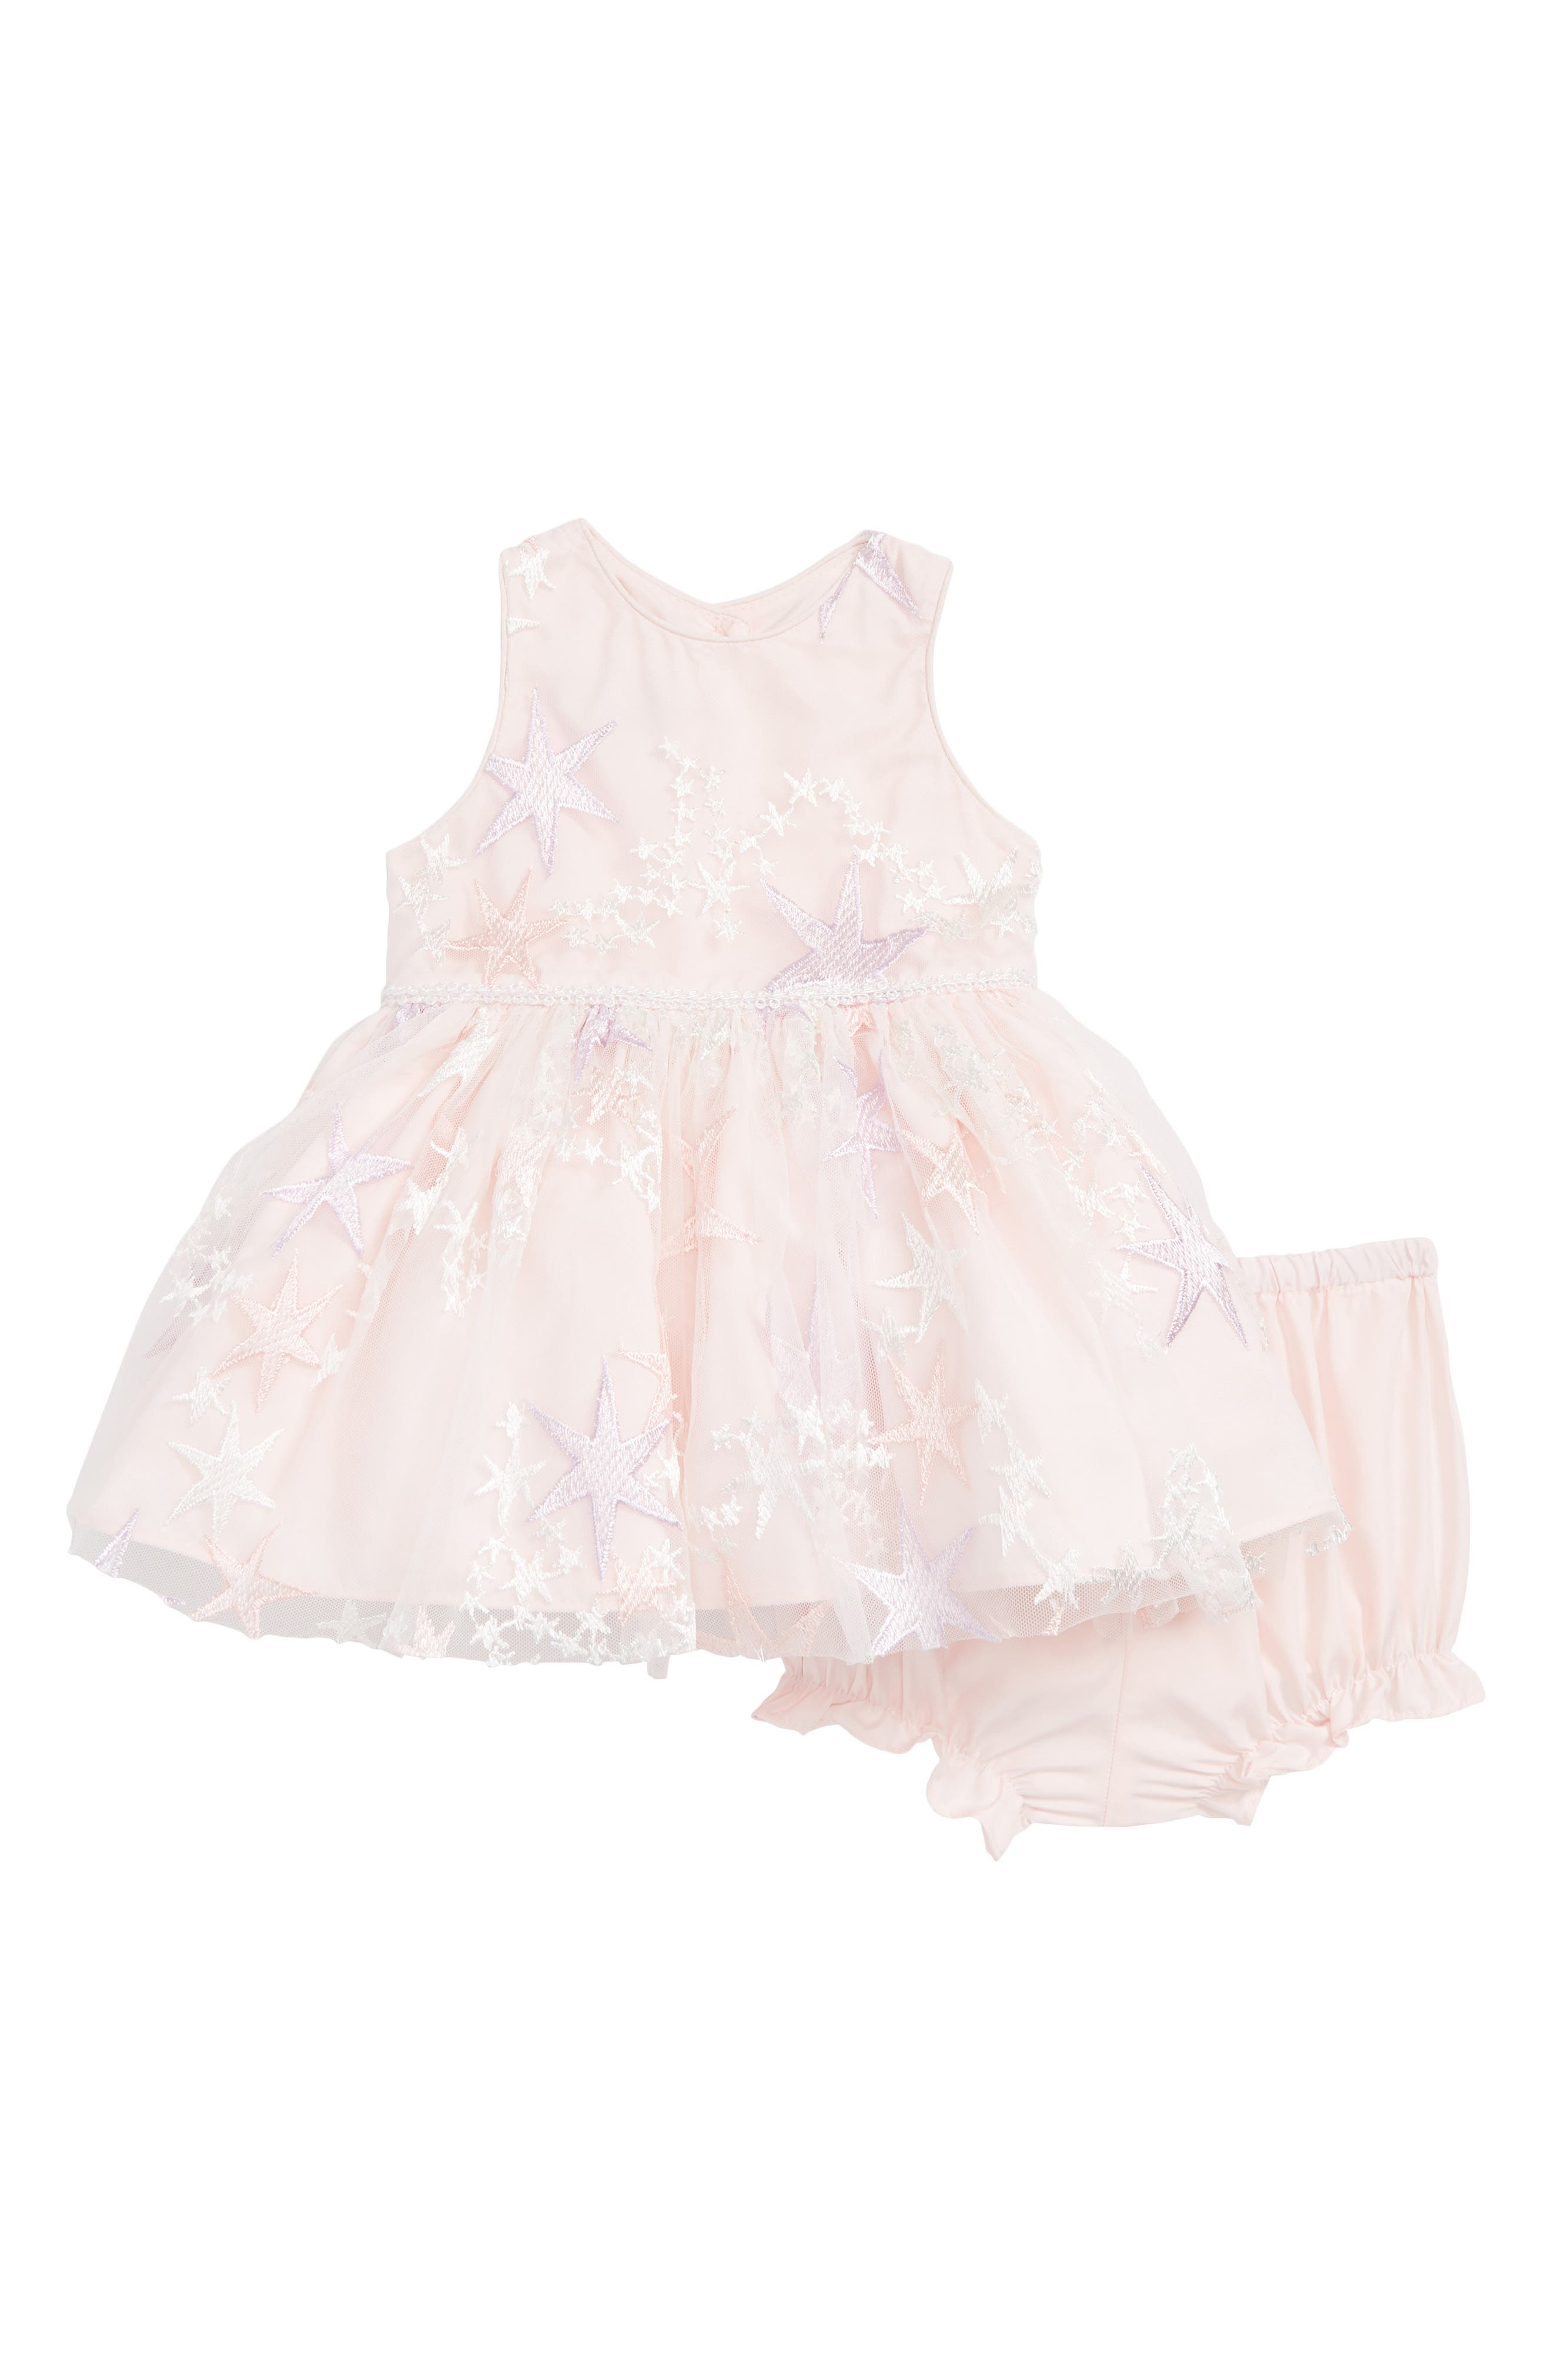 Pippa & Julie Embroidered Star Tulle Dress (Baby Girls) Pippa & Julie